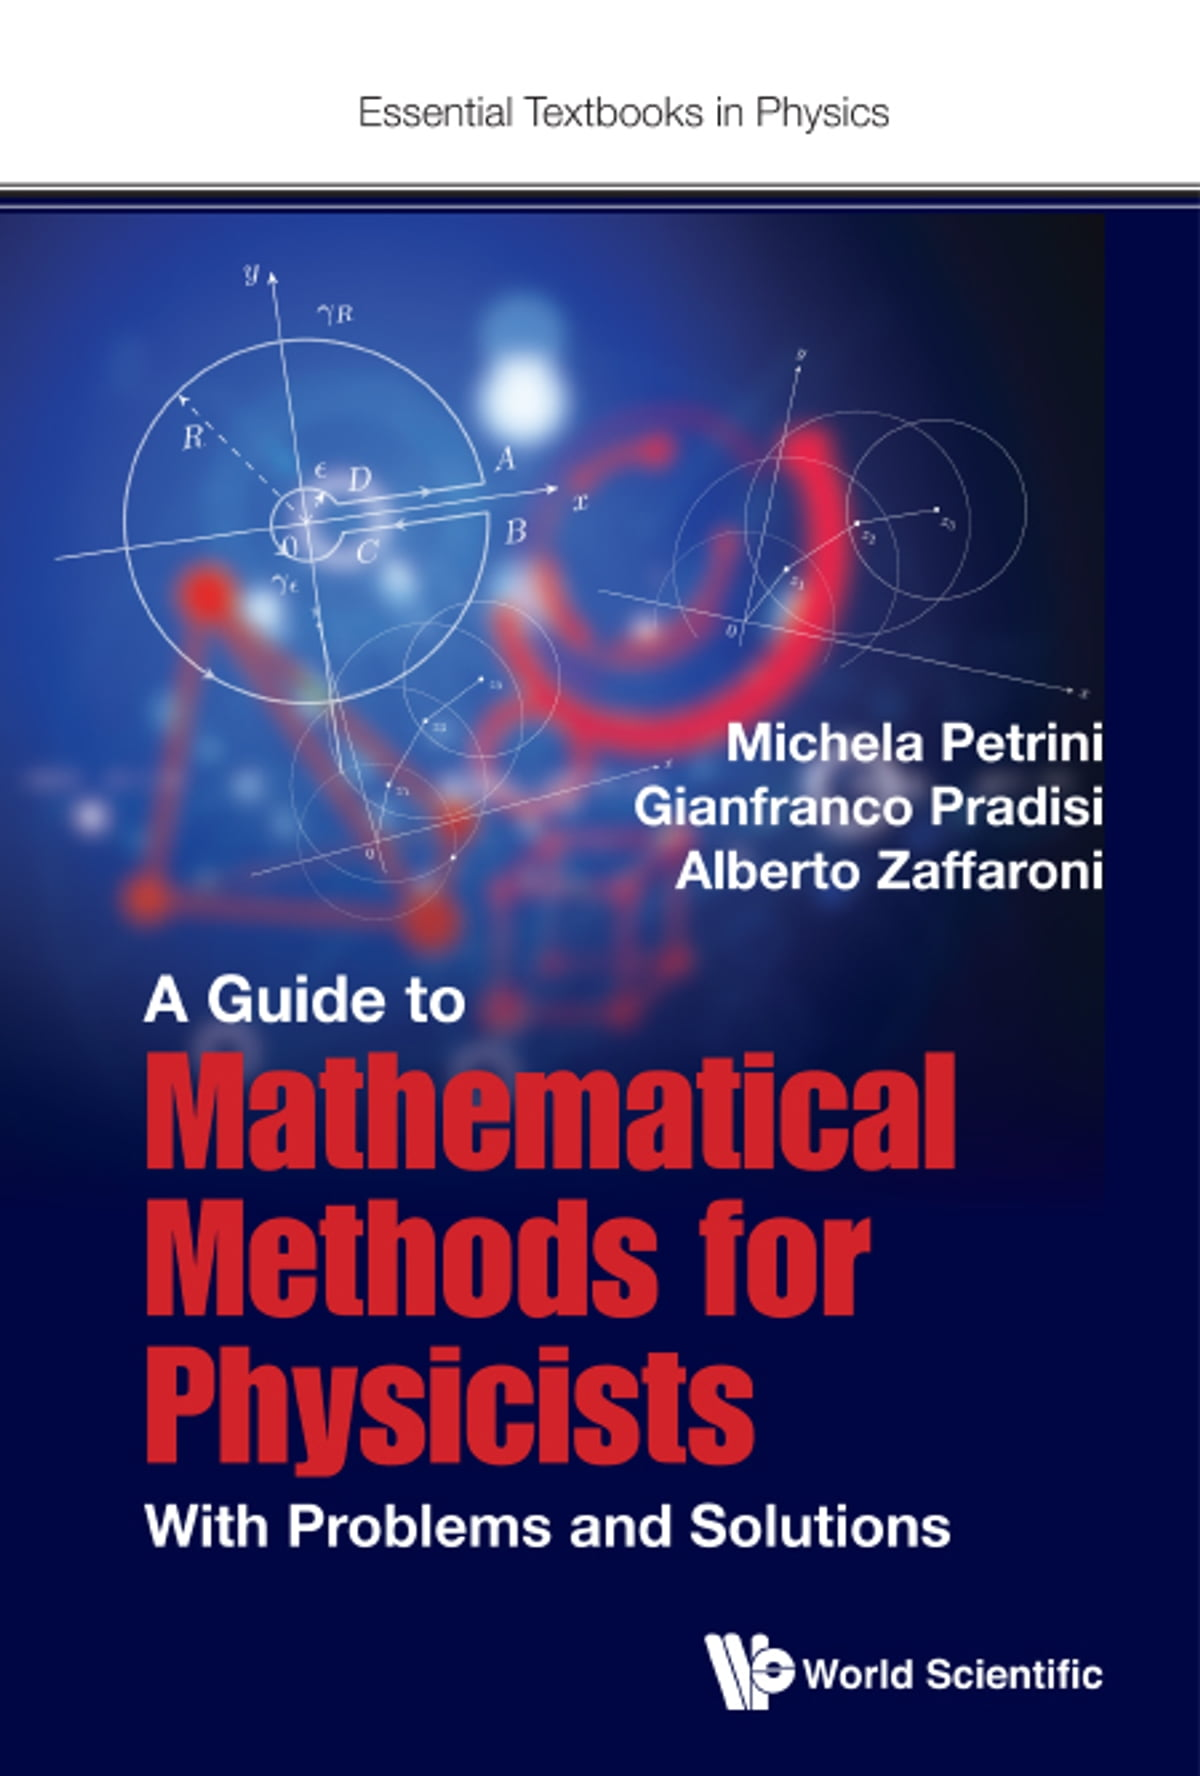 A Guide to Mathematical Methods for Physicists eBook by Michela Petrini -  9781786343468   Rakuten Kobo